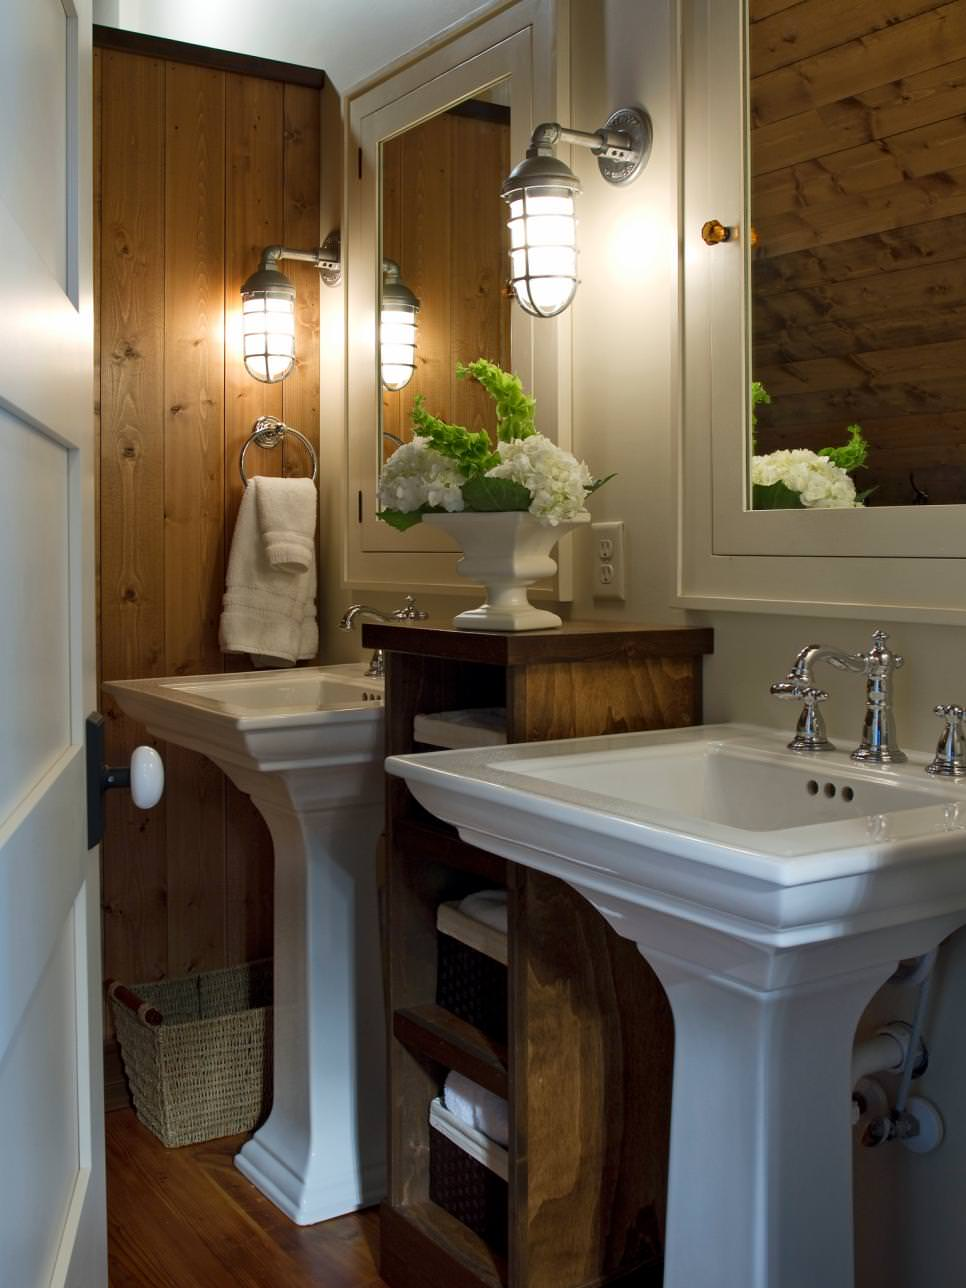 24 bathroom pedestal sinks ideas designs design trends premium